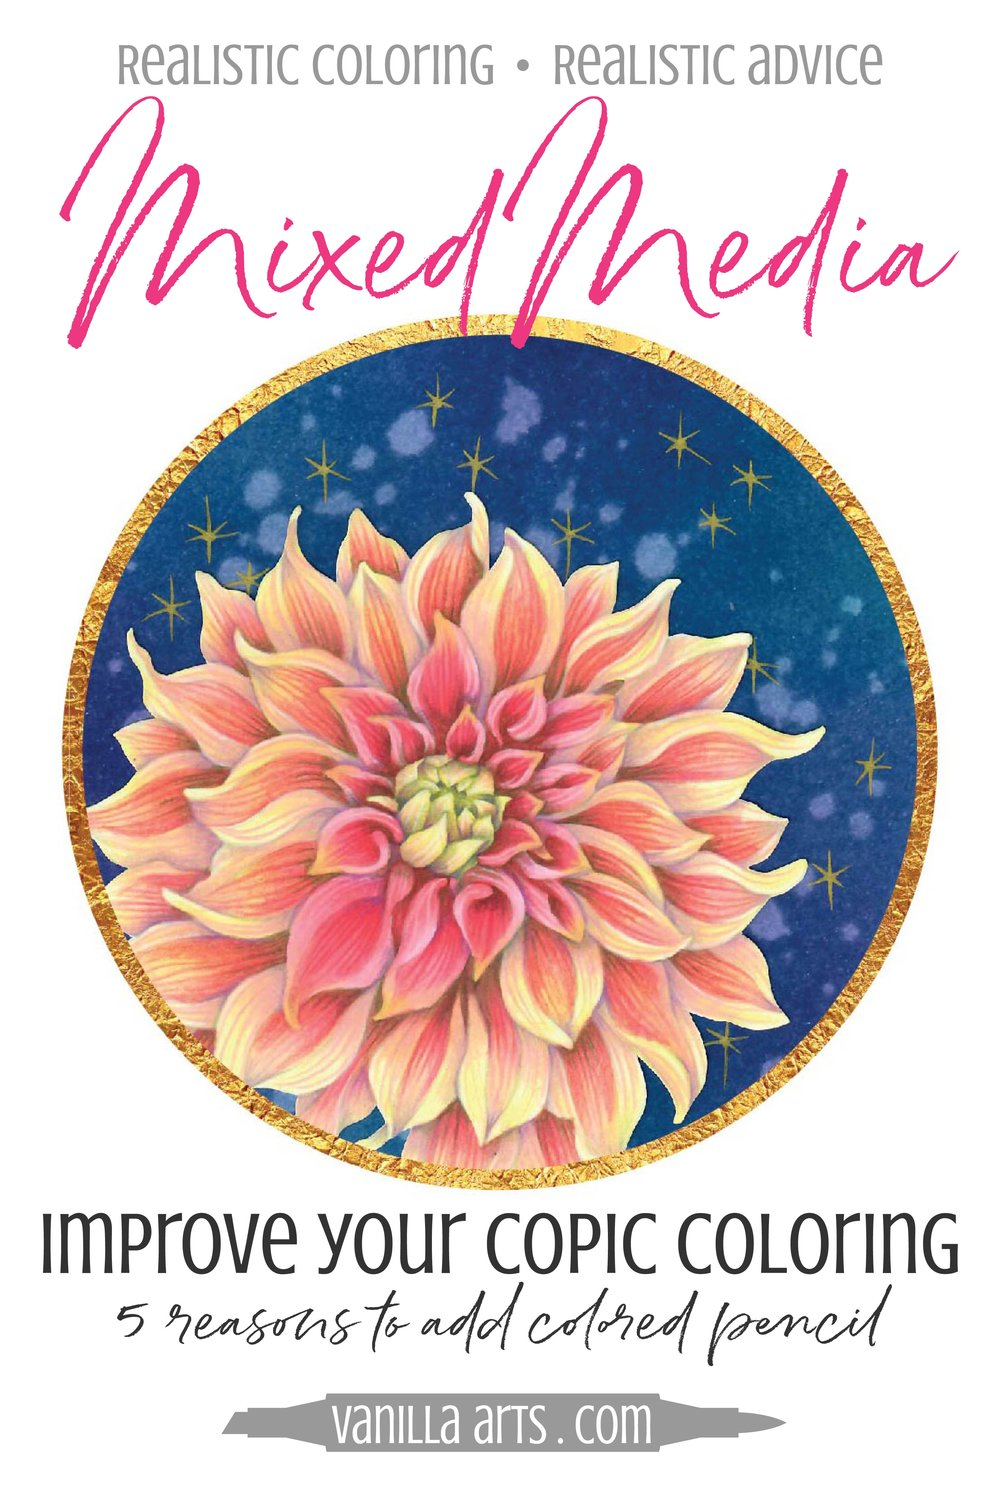 Want to add artistry and realism to your Copic Marker projects? 5 reasons to add colored pencils! | VanillaArts.com | #copic #coloredpencil #coloringtips #adultcoloring #howtocolor